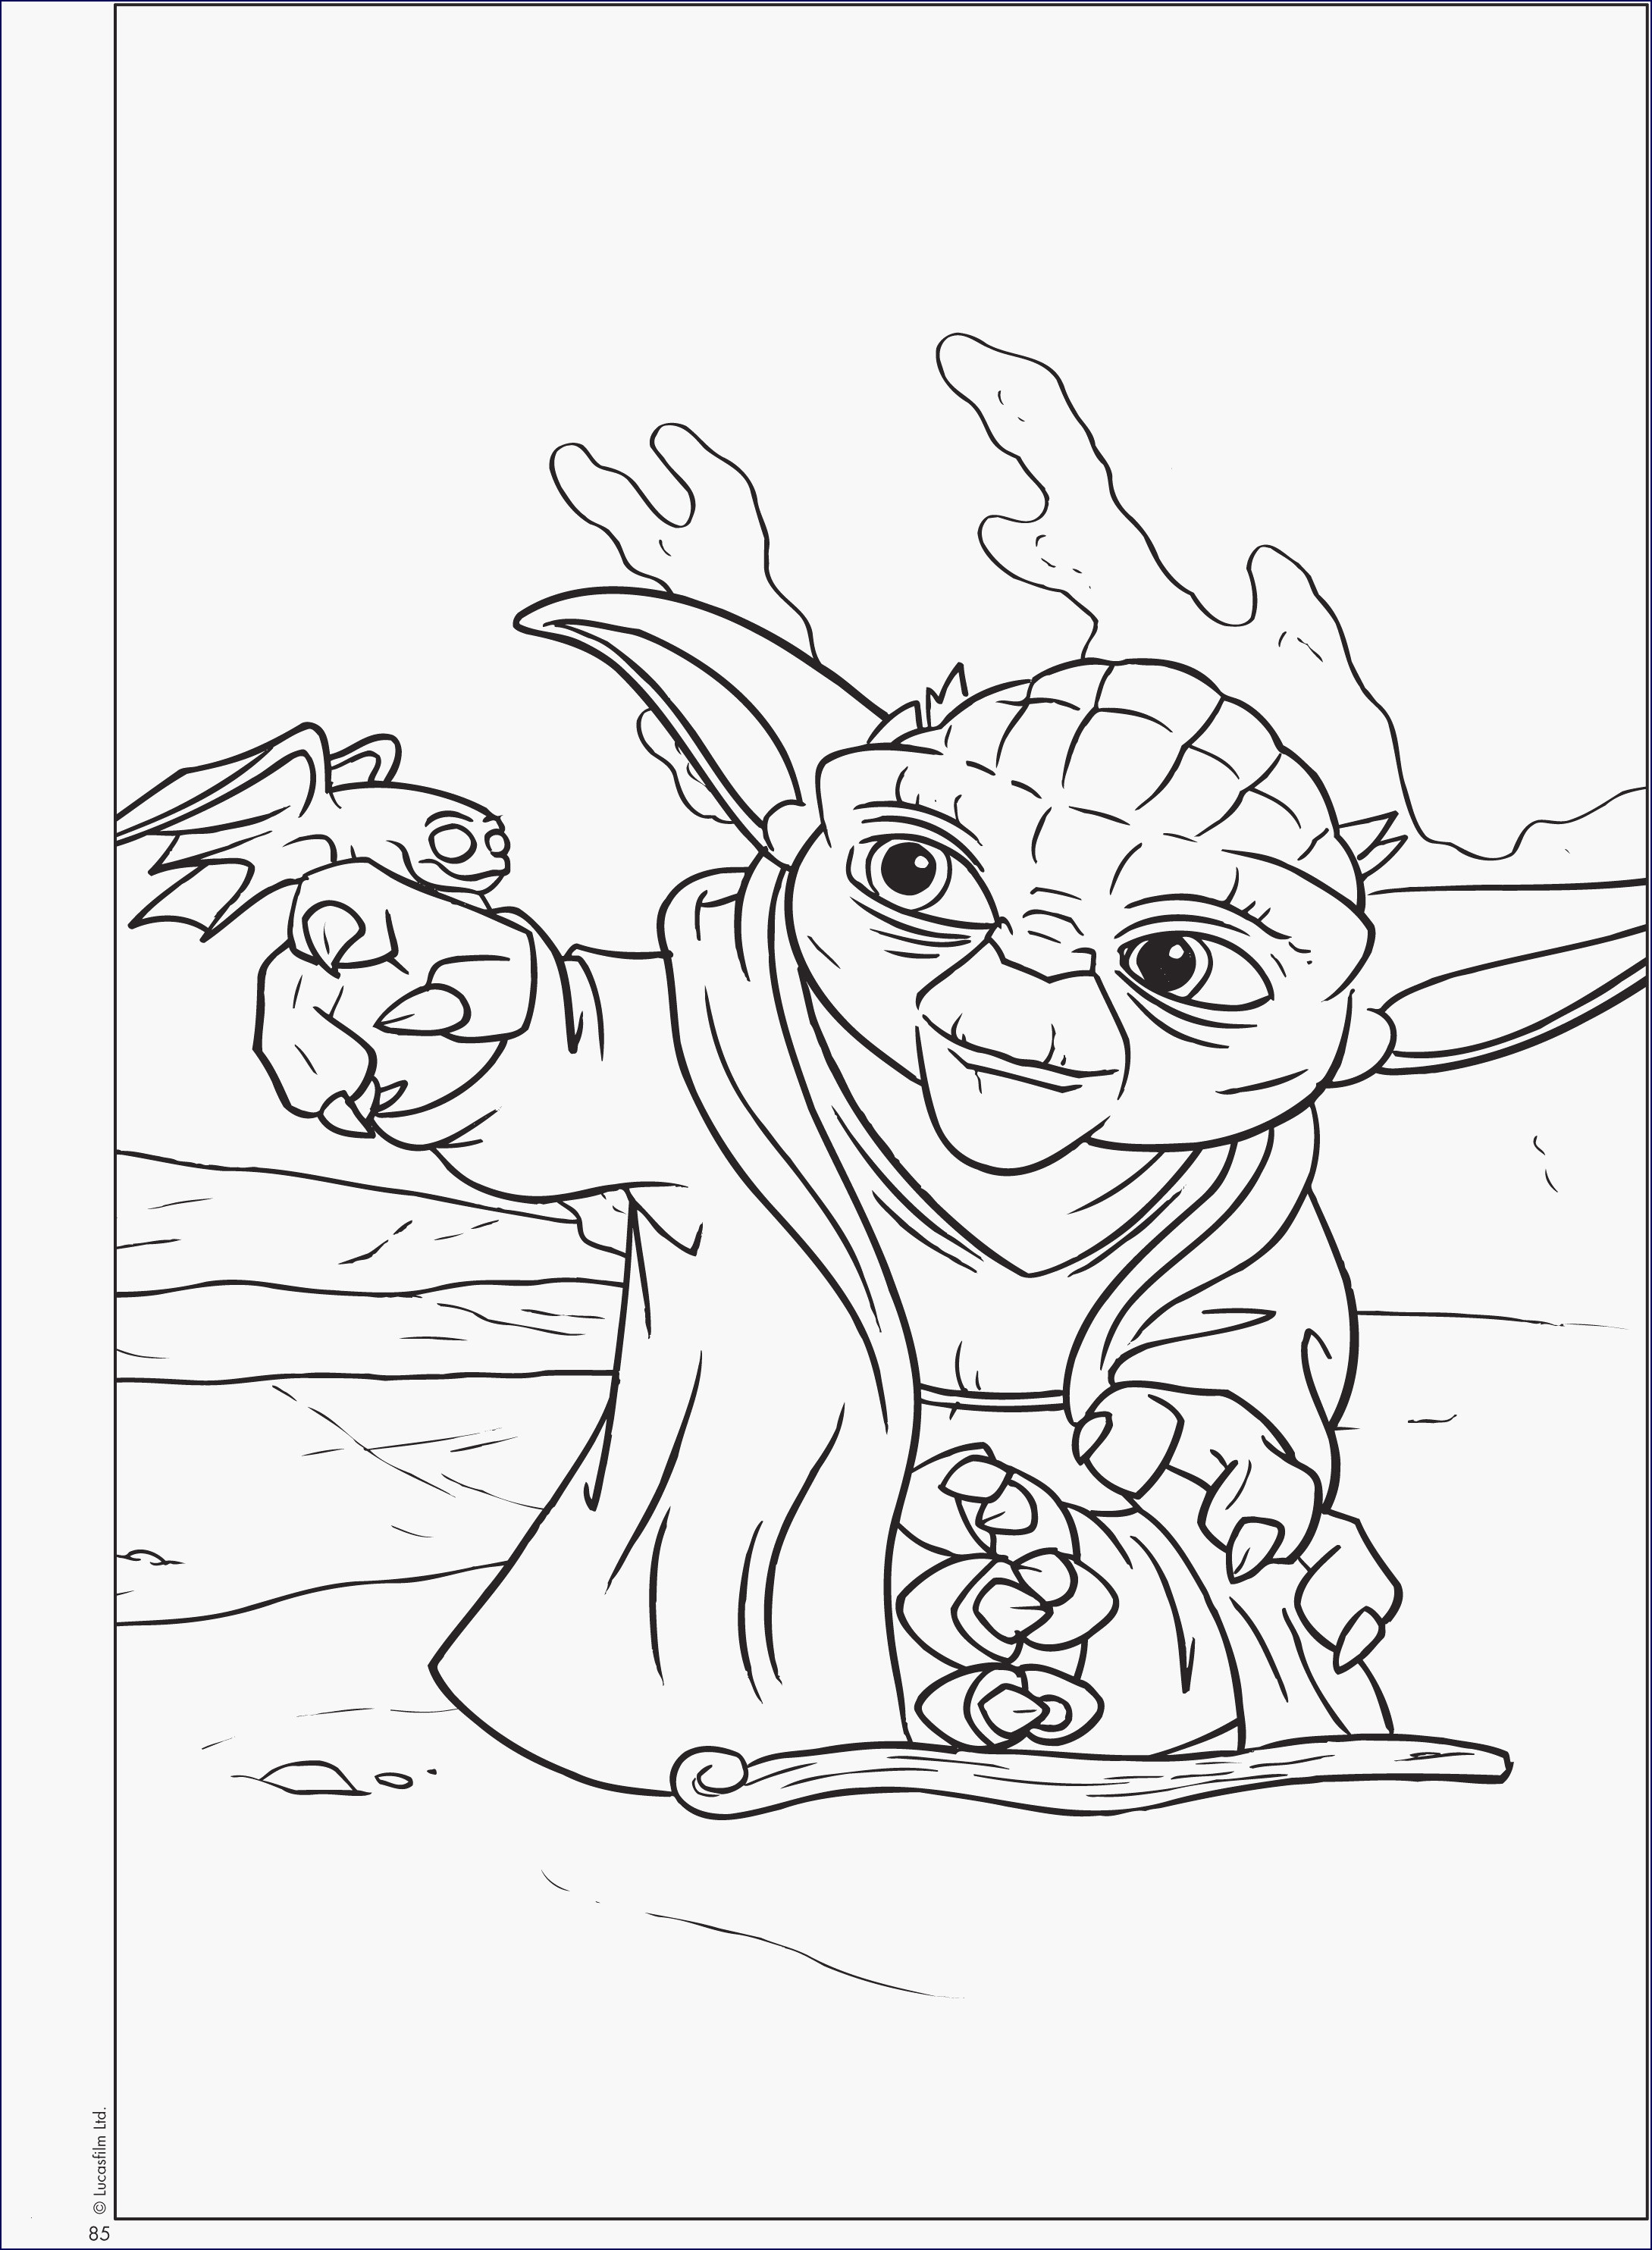 Lego Santa Claus Coloring Pages With Starwars